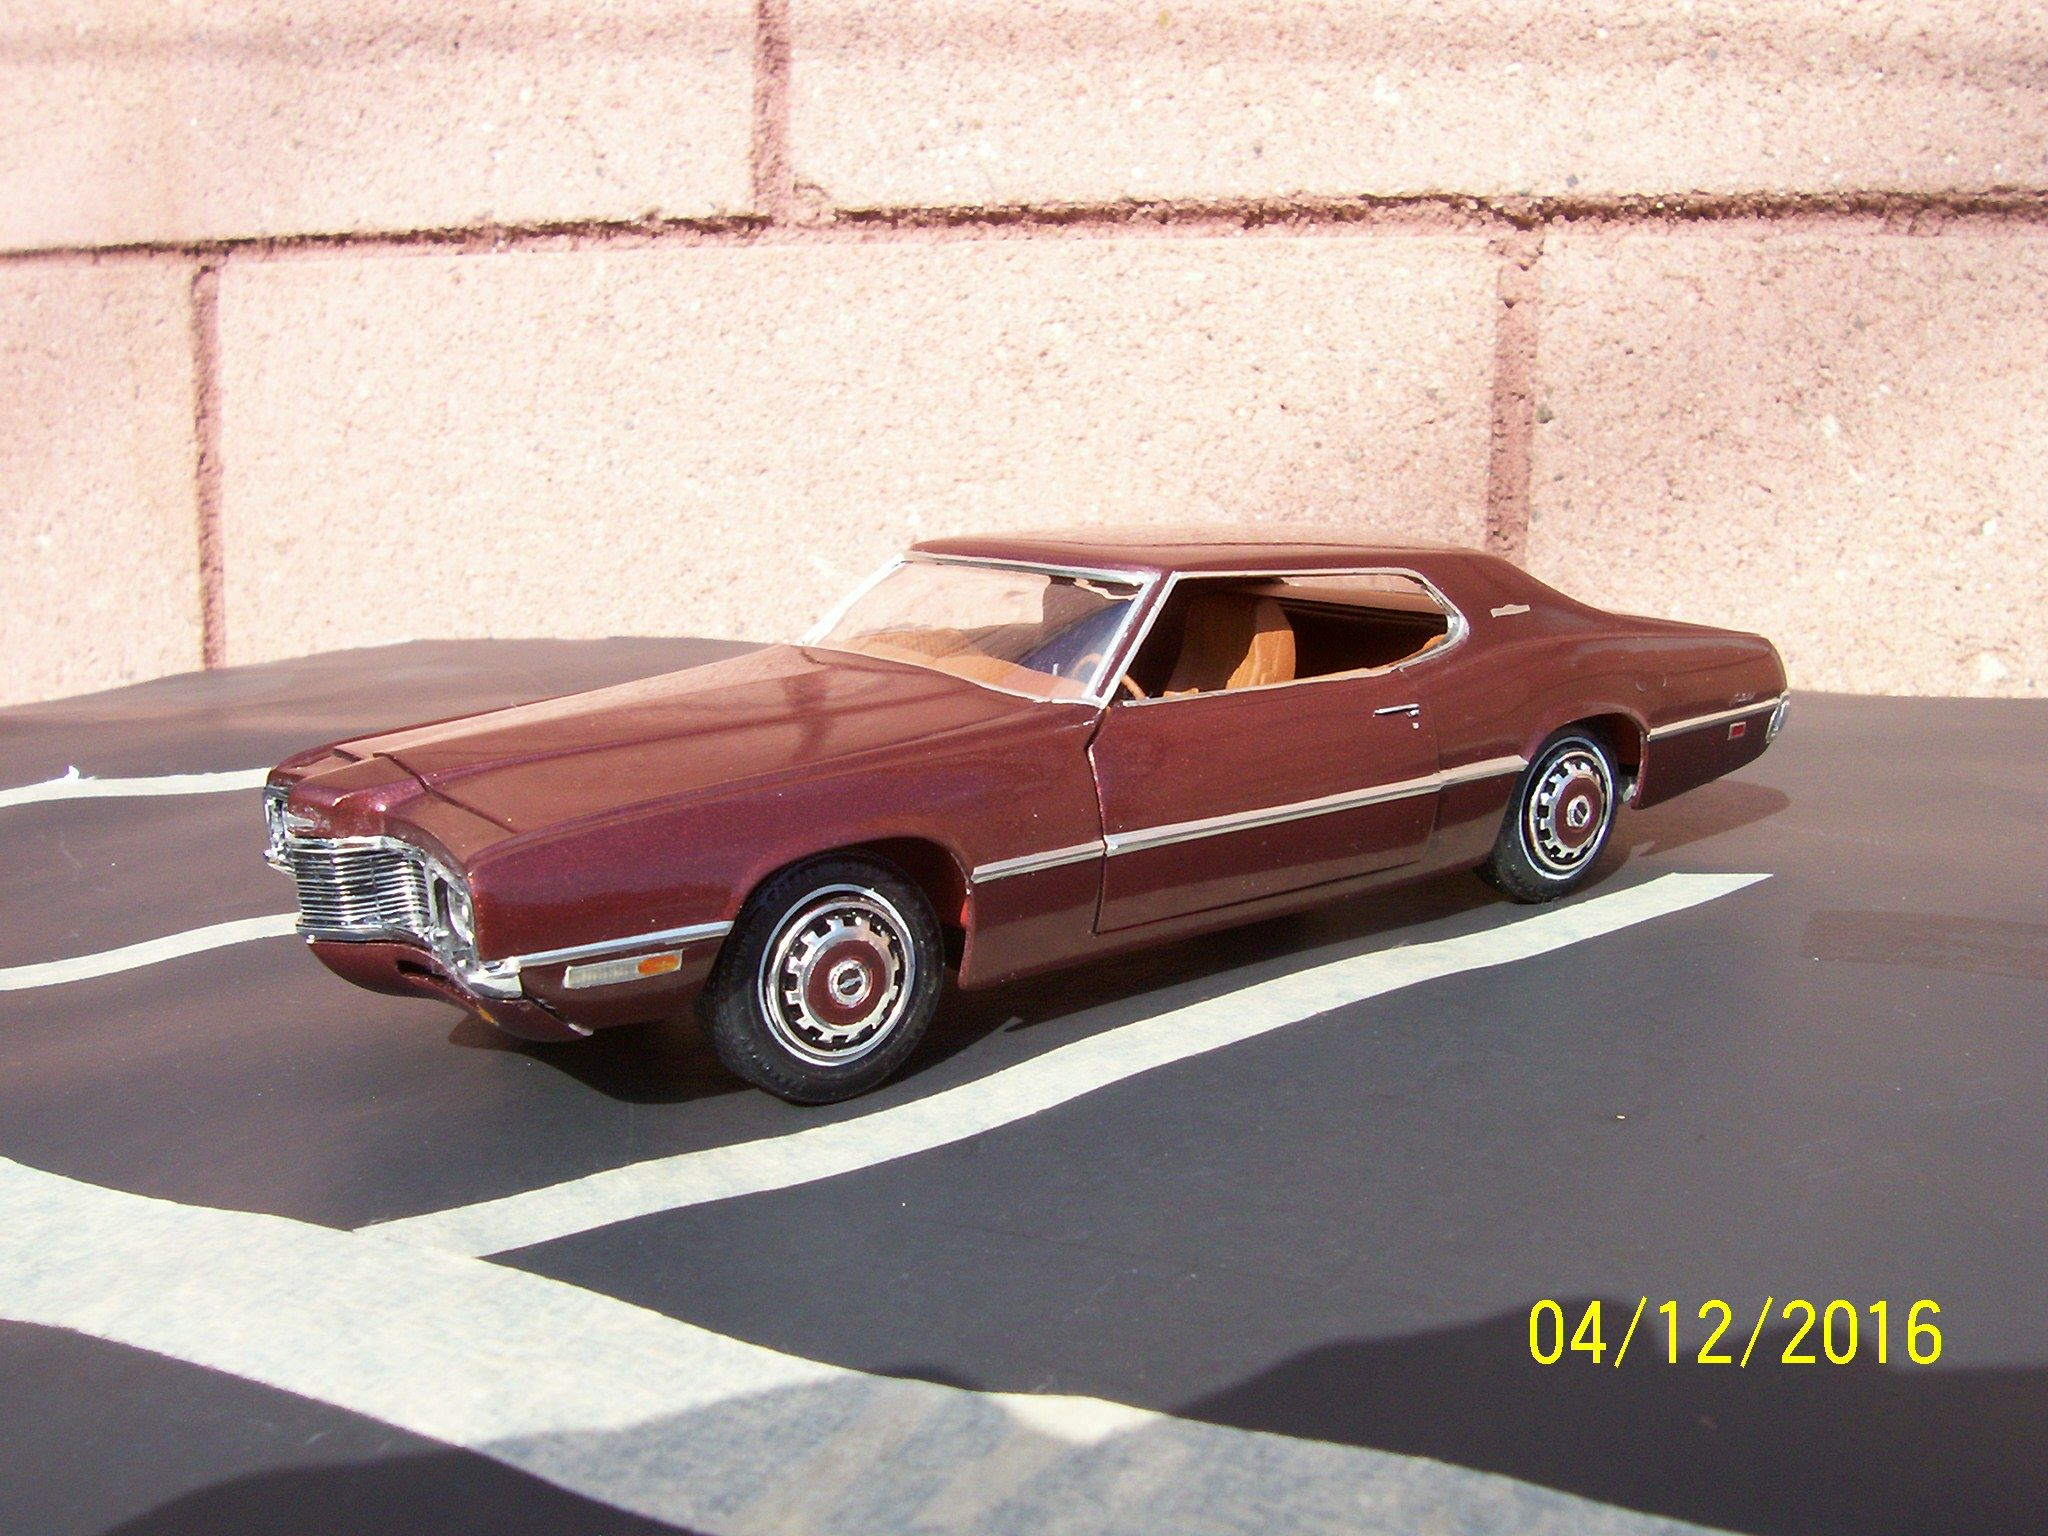 1971 Ford Thunderbird 1 25 Scale Model Car Built From Amt Kit